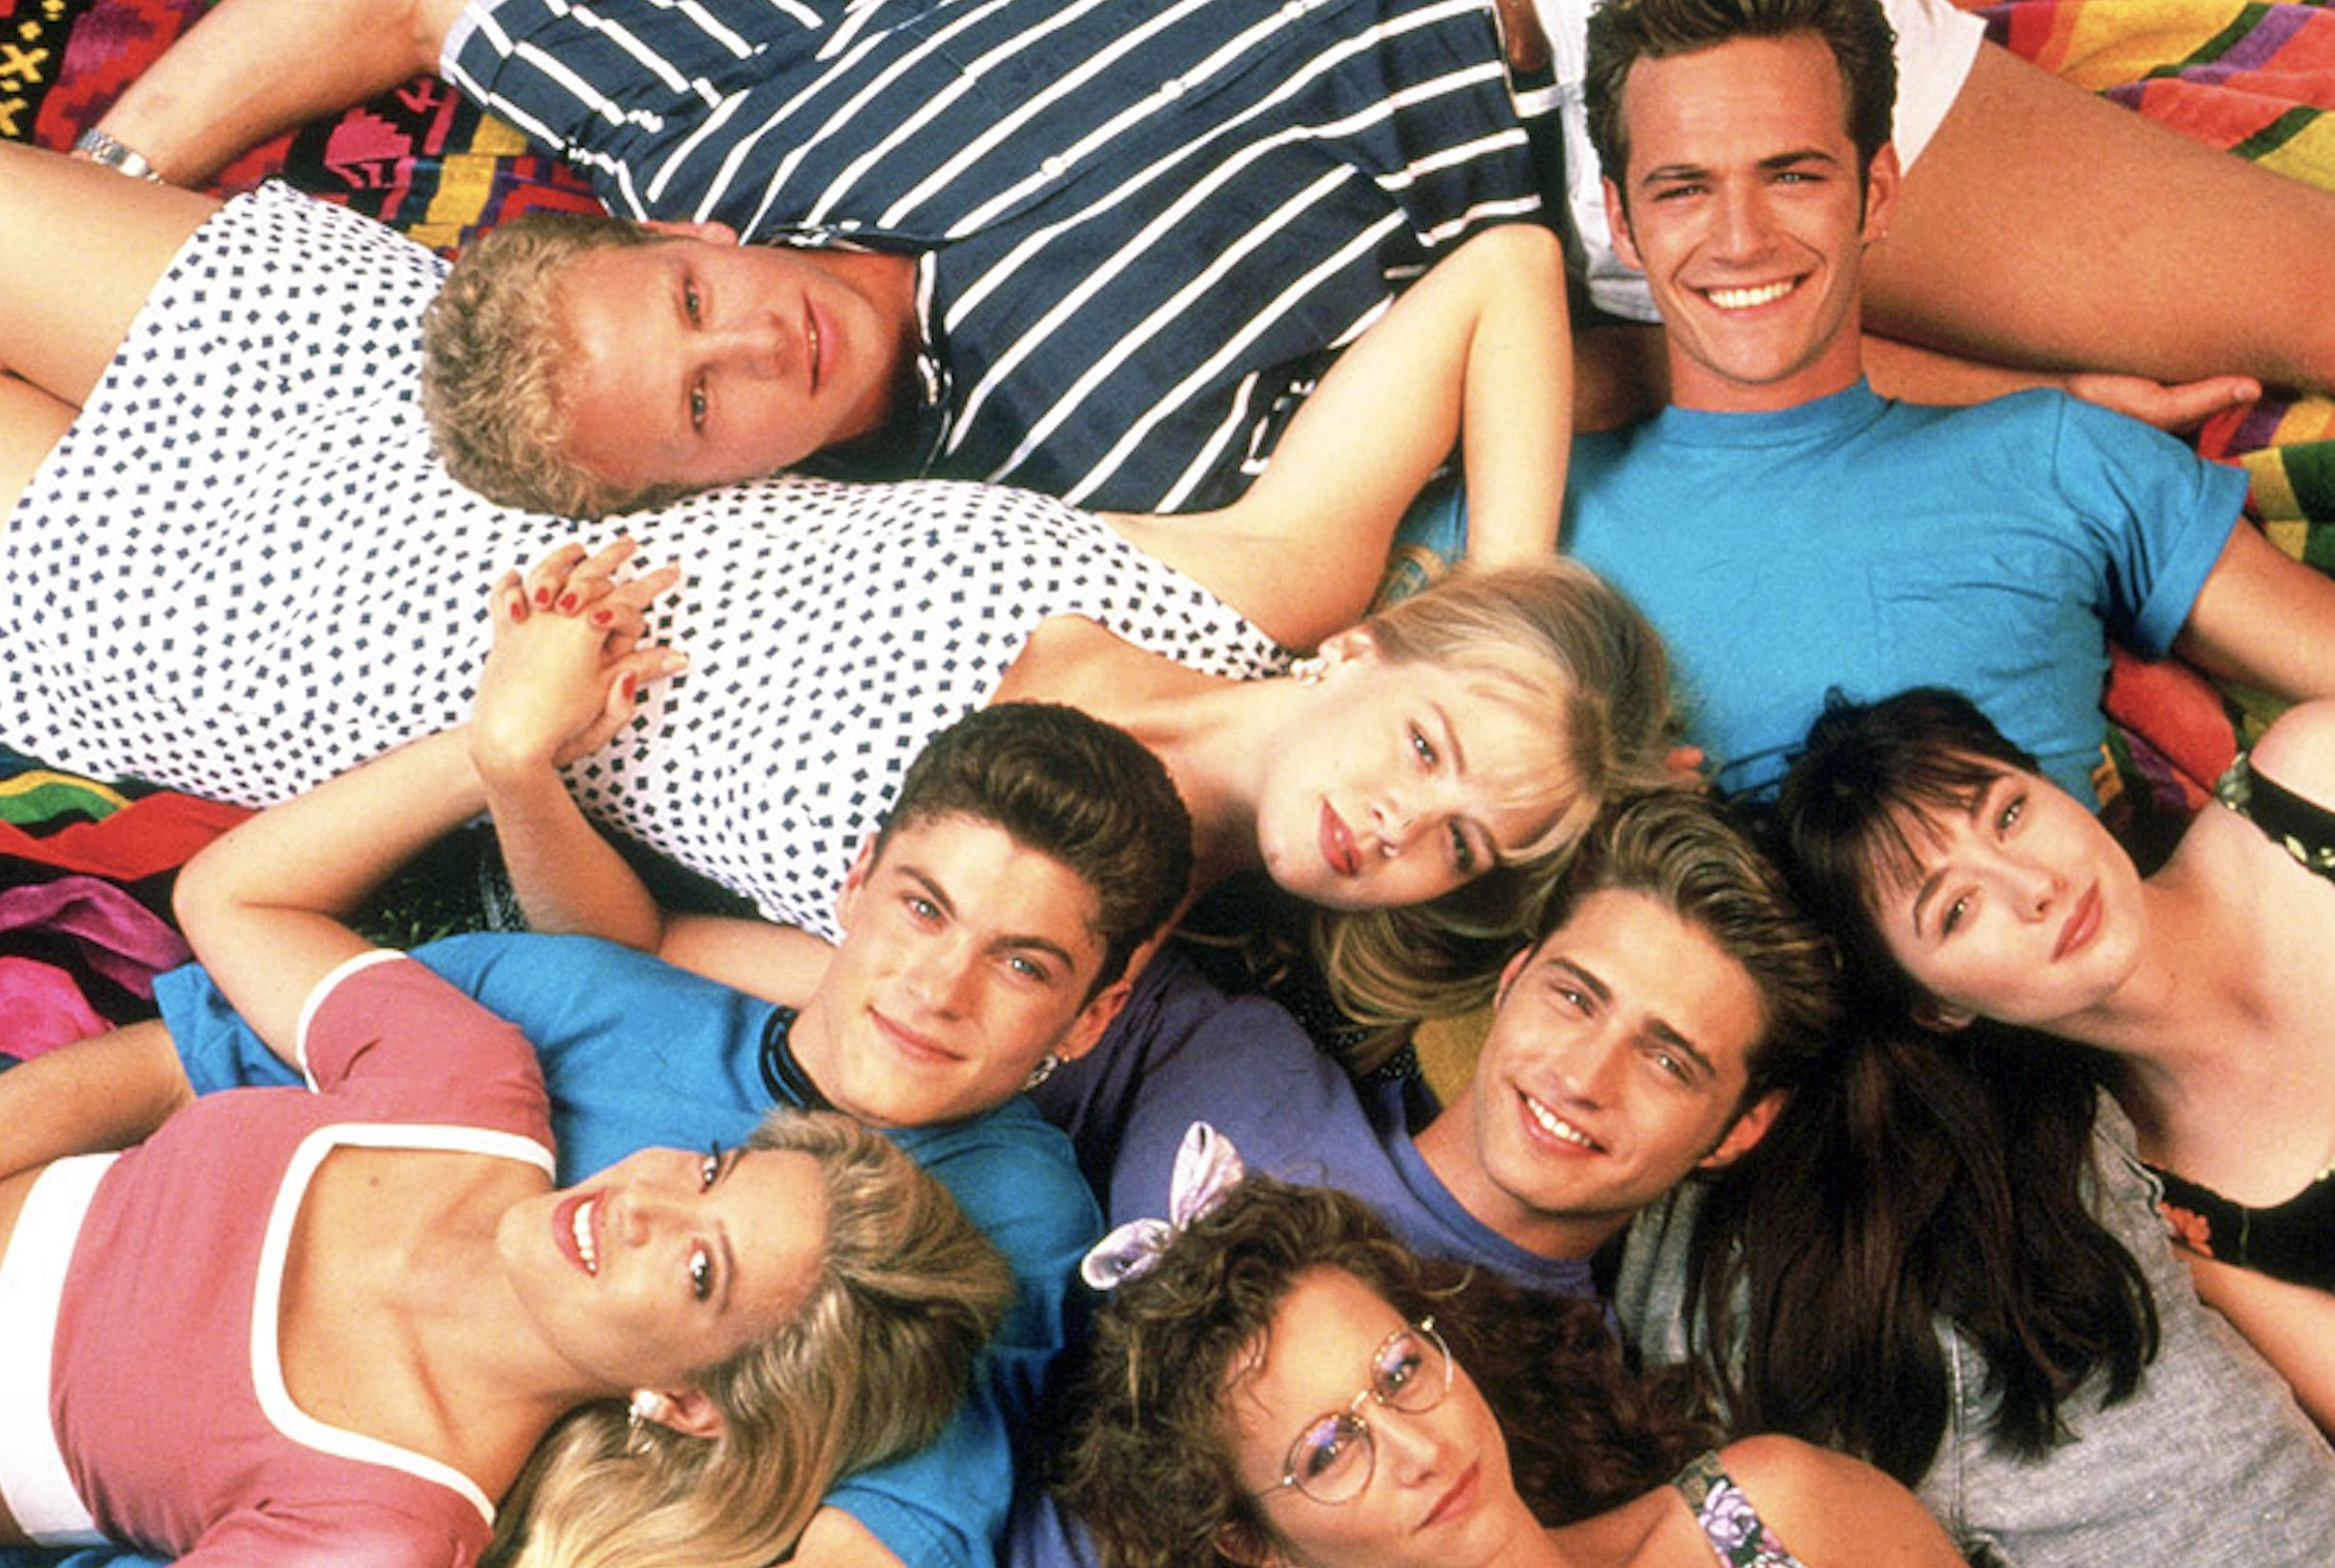 25 Rich Facts About Beverly Hills, 90210 | Mental Floss